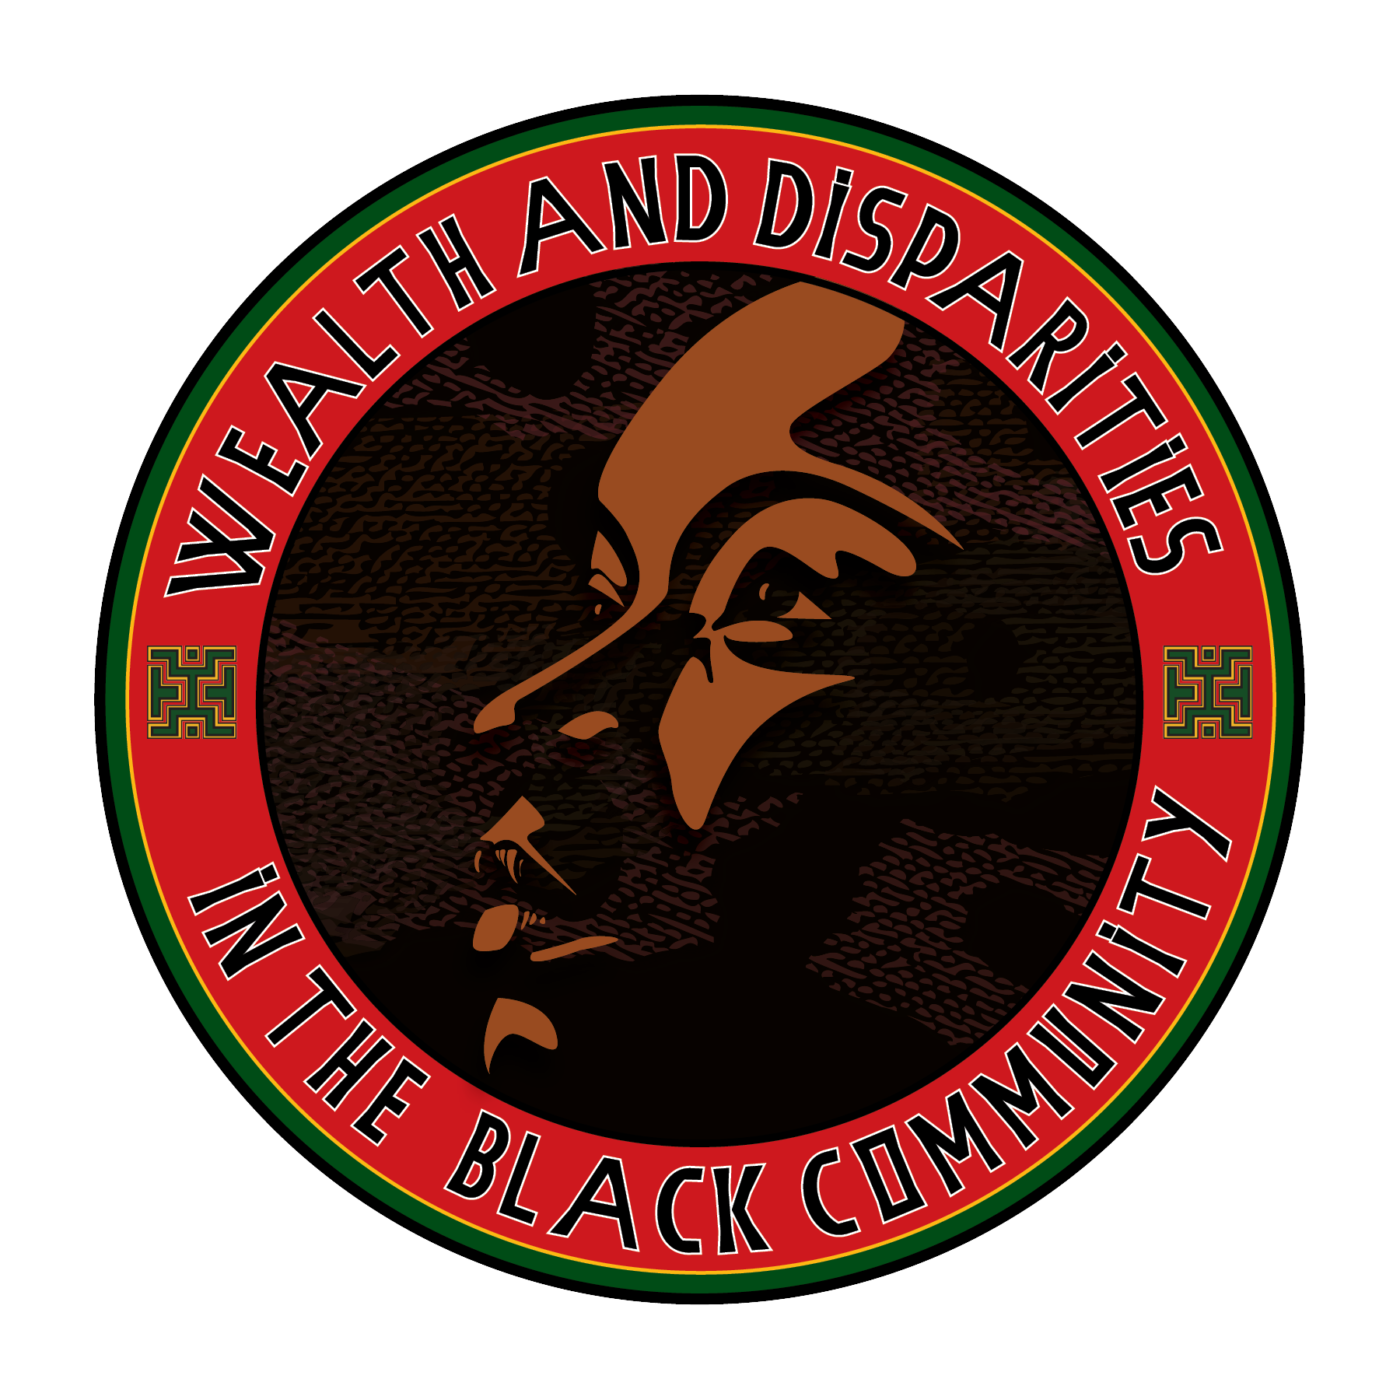 Wealth-and-Disparities-in-the-Black-Community-logo-1400x1400, Why are SF Supervisors hesitant to demand racial equity in policing and hold SFPD accountable?, Local News & Views